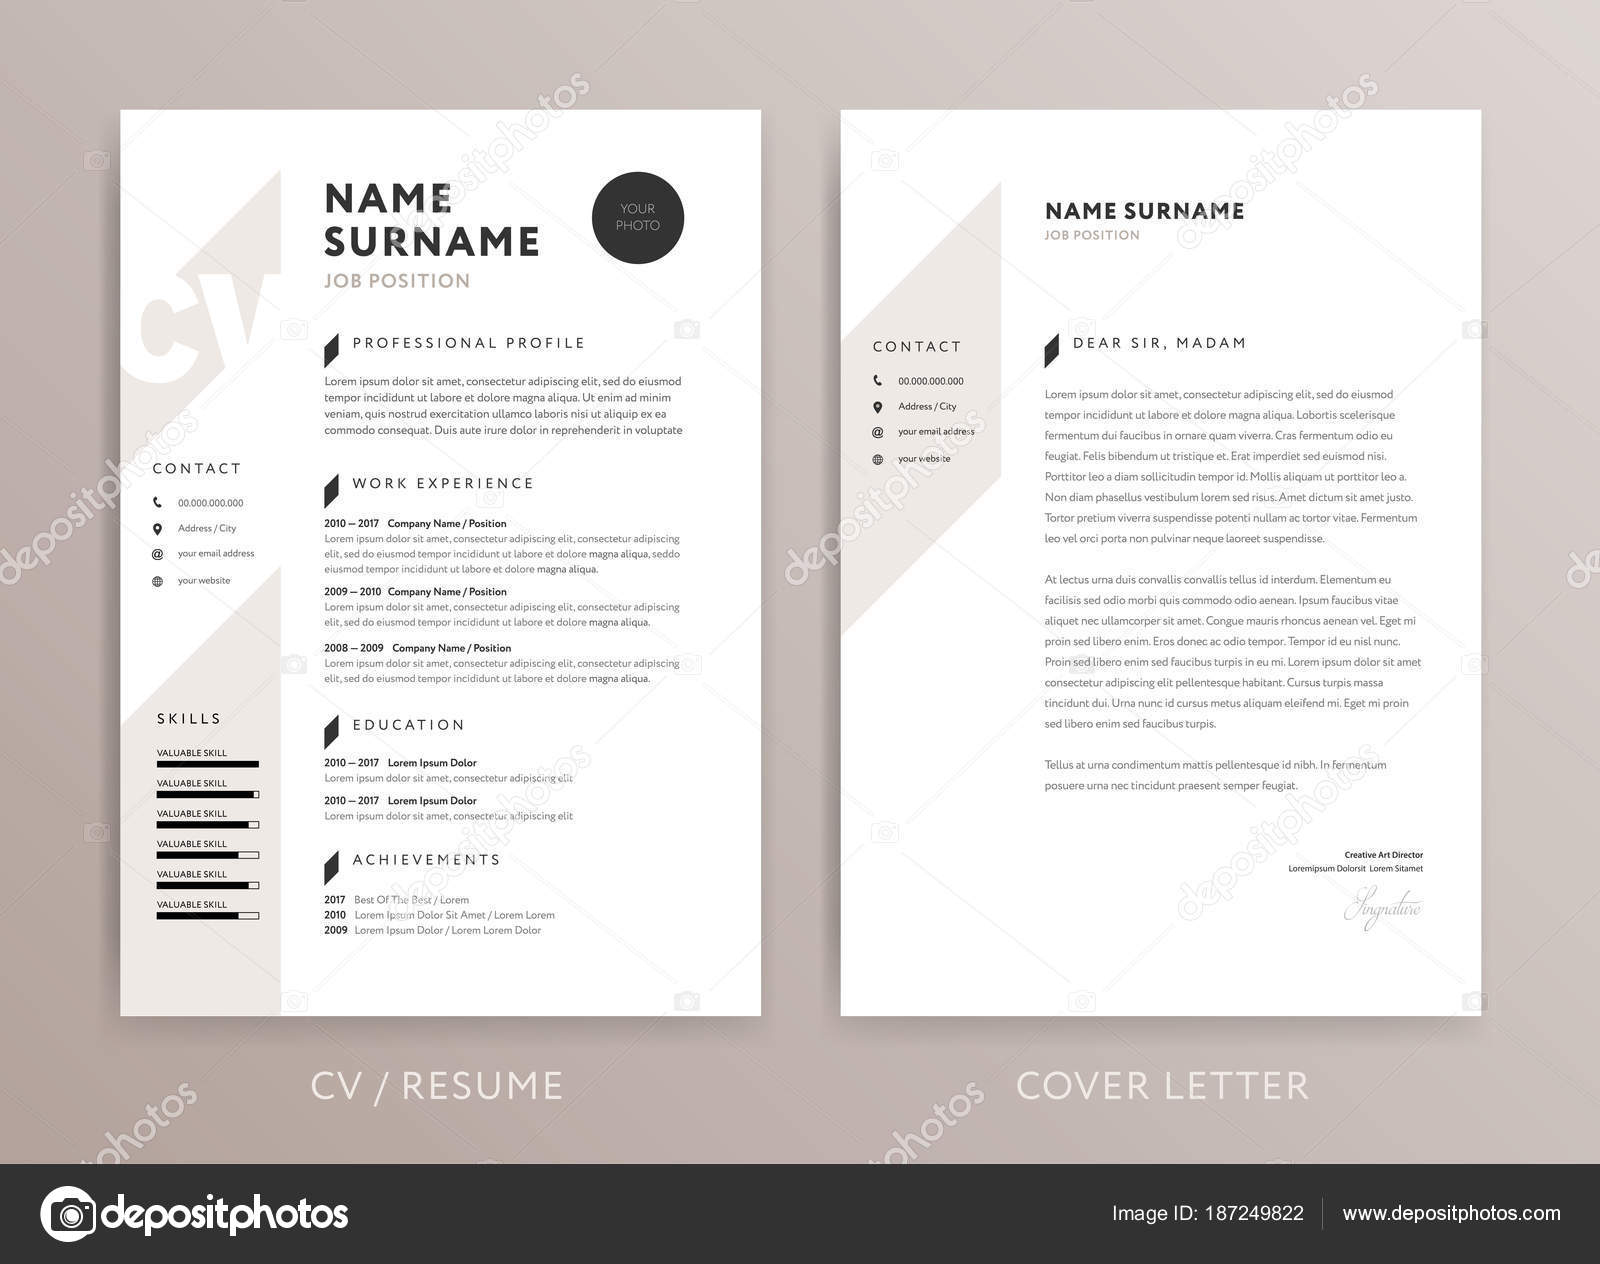 Stylish Cv Design Curriculum Vitae Cover Letter Template Ros